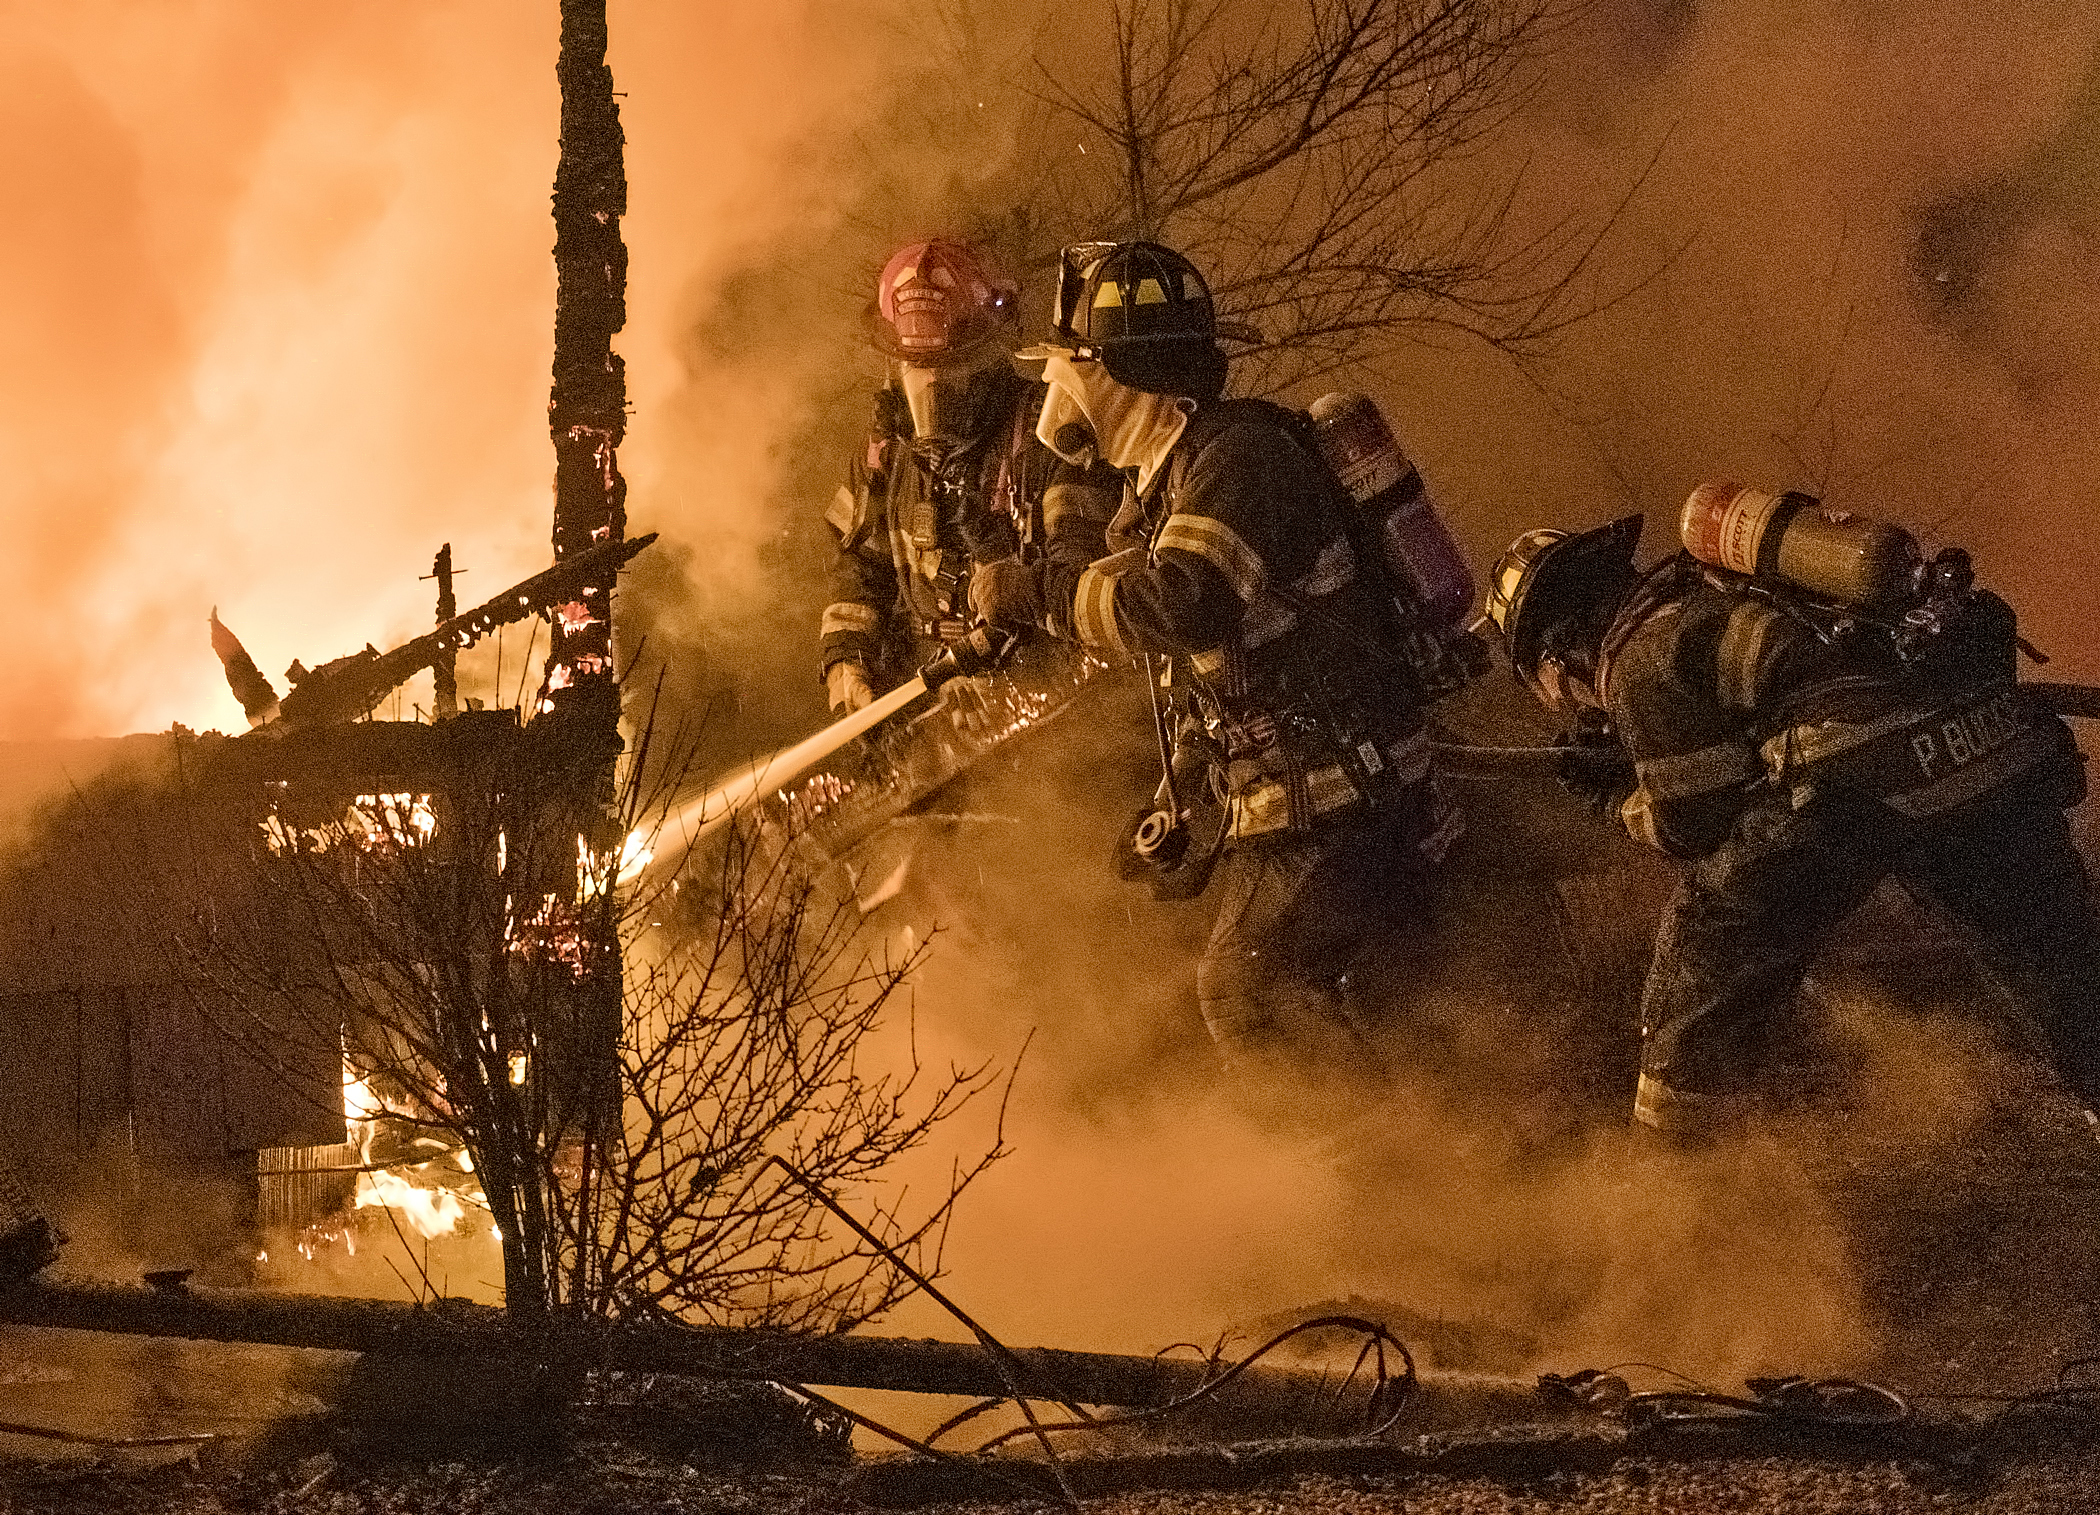 Hot And Cold February 14 -- Firefighters battled a fire in frigid conditions at an unoccupied house on Dune Road in Westhampton during the early morning hours on Sunday. According to a press release from the Westhampton Beach Fire Department, crews were dispatched to the scene at 5:59 a.m. and, upon arrival, found a small house fully engulfed in flames. First Assistant Chief Mauro DiBenedetto said the home was located on Dune Road between Westhampton Beach and West Hampton Dunes, in unincorporated Westhampton. Once the first engine arrived, the flames were knocked down within 20 minutes, and the crews spent another 20 minutes extinguishing another fire in a chimney area. Firefighters spent additional time inspecting the house for any other hidden pockets of fire within the walls or ceilings.